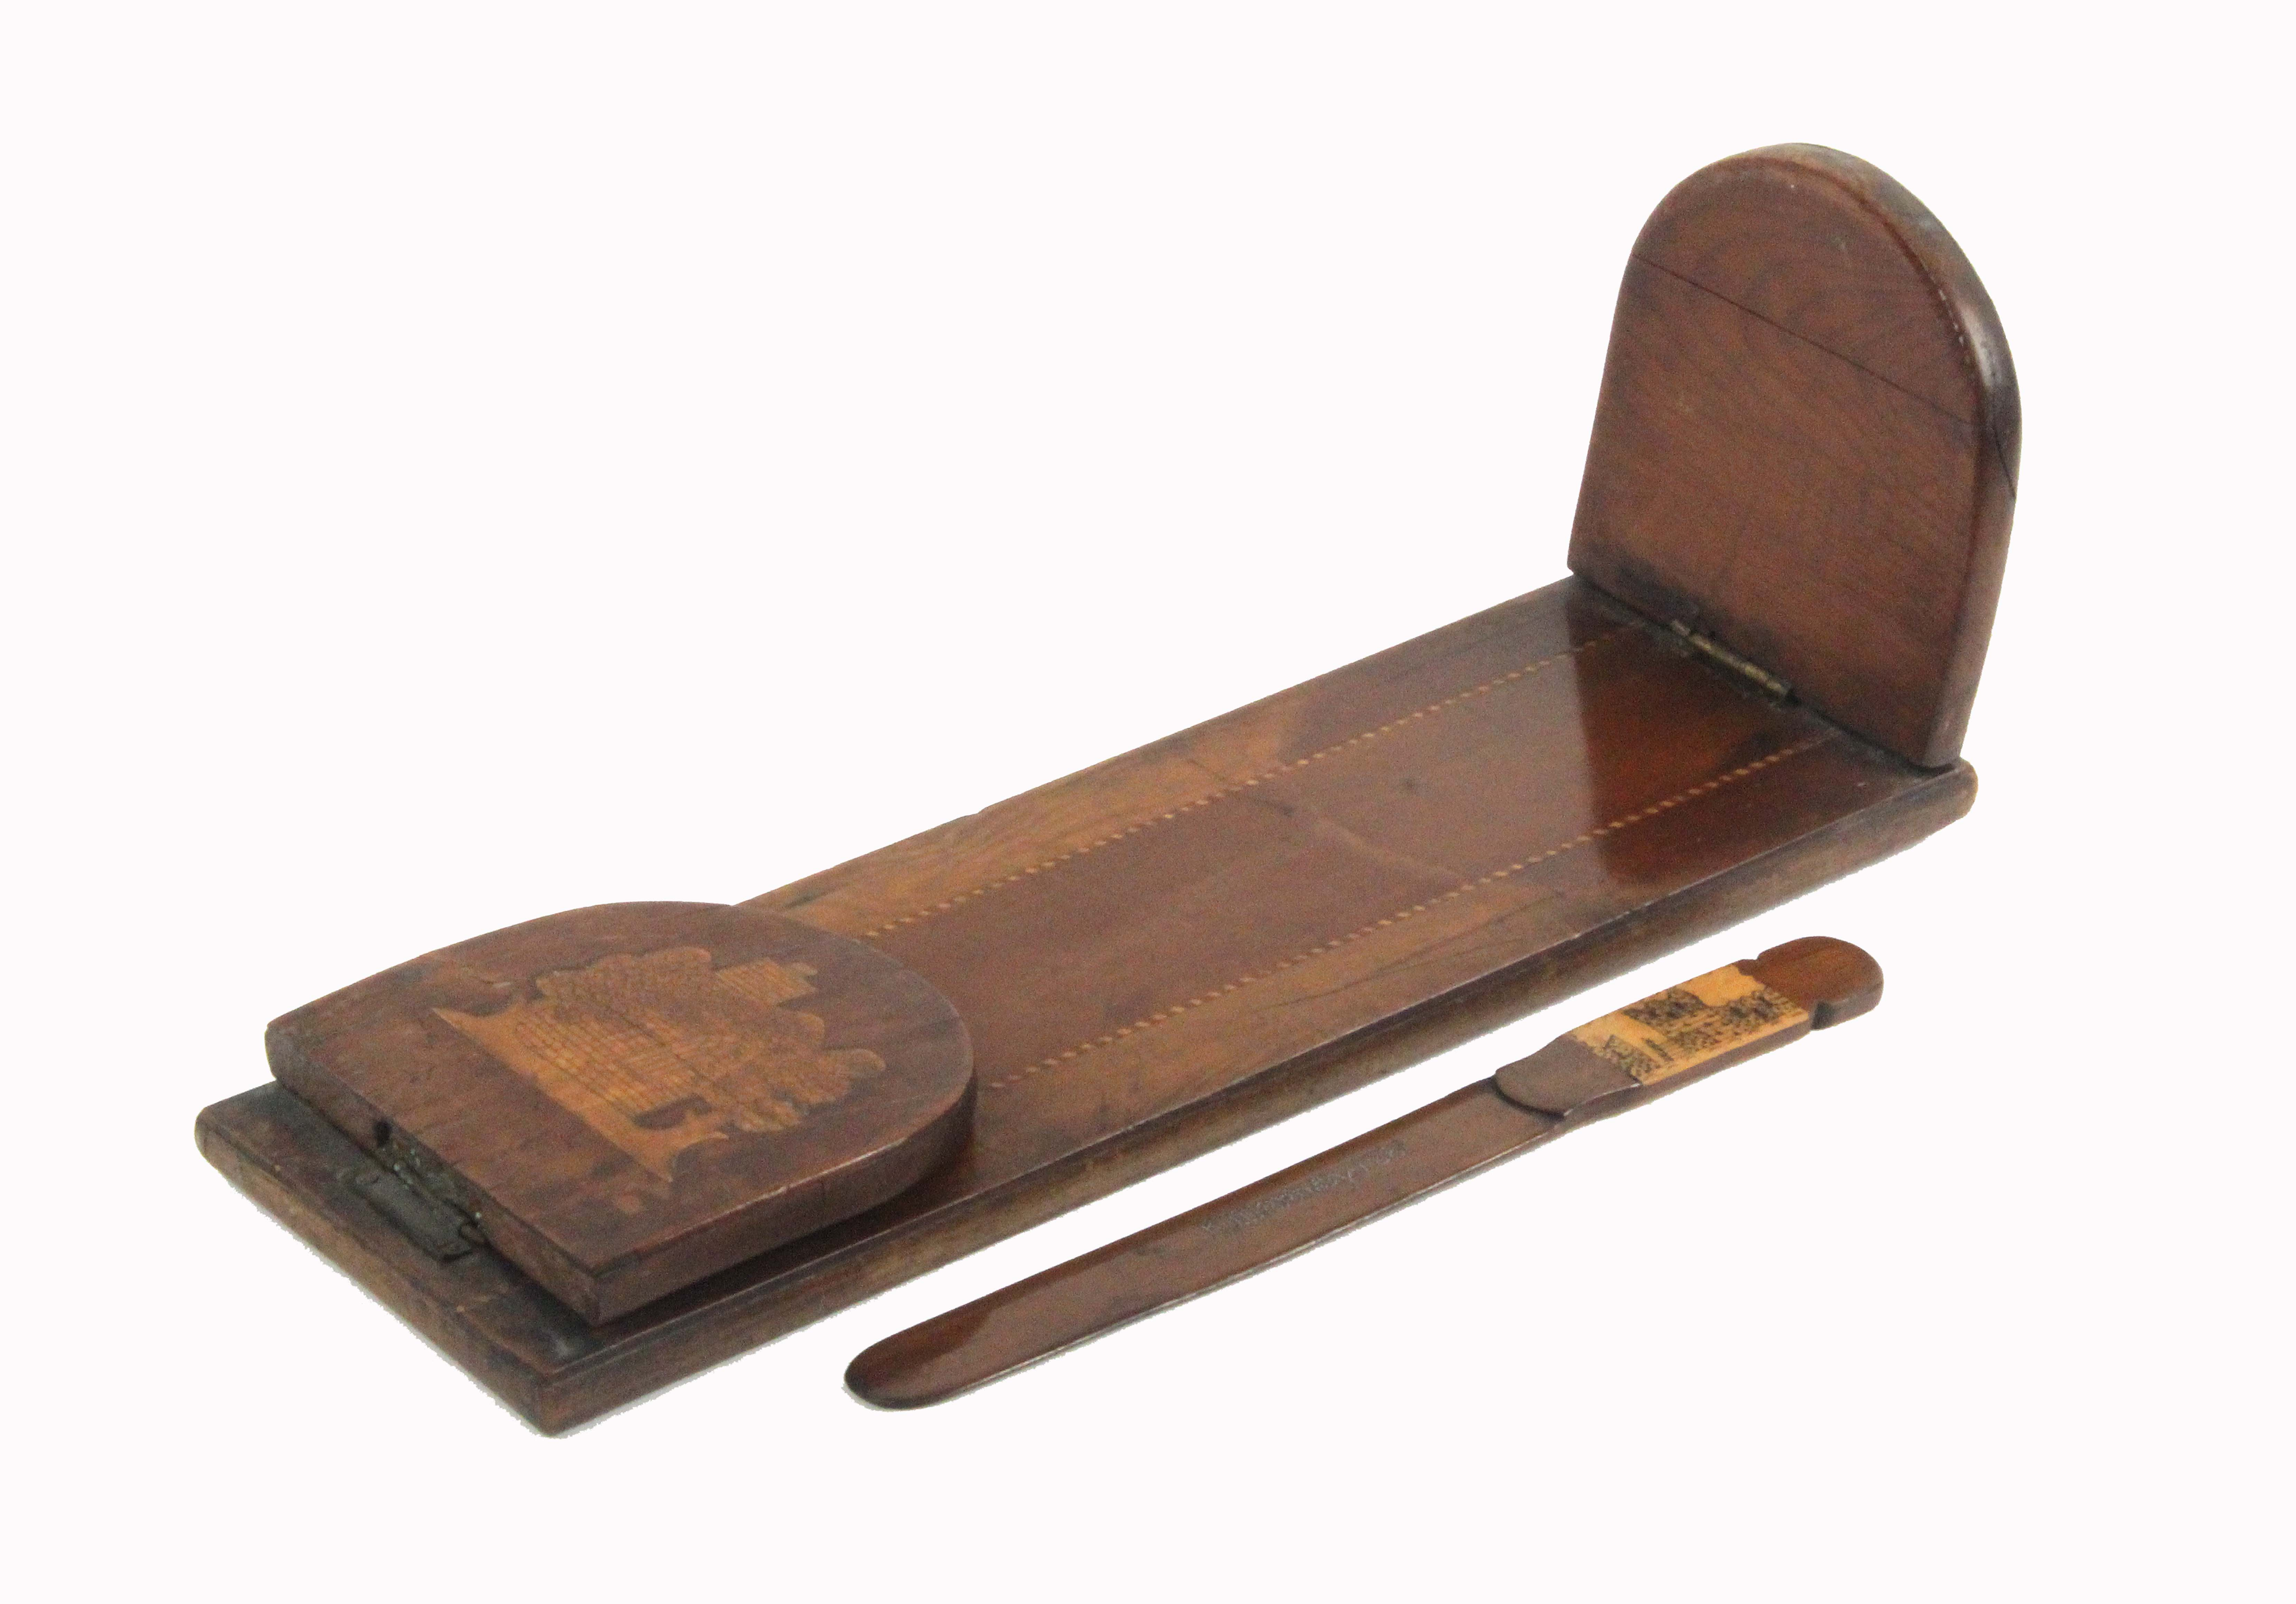 A mid 19th Century Killarney ware arbutus wood book retainer and a paper knife, the first with